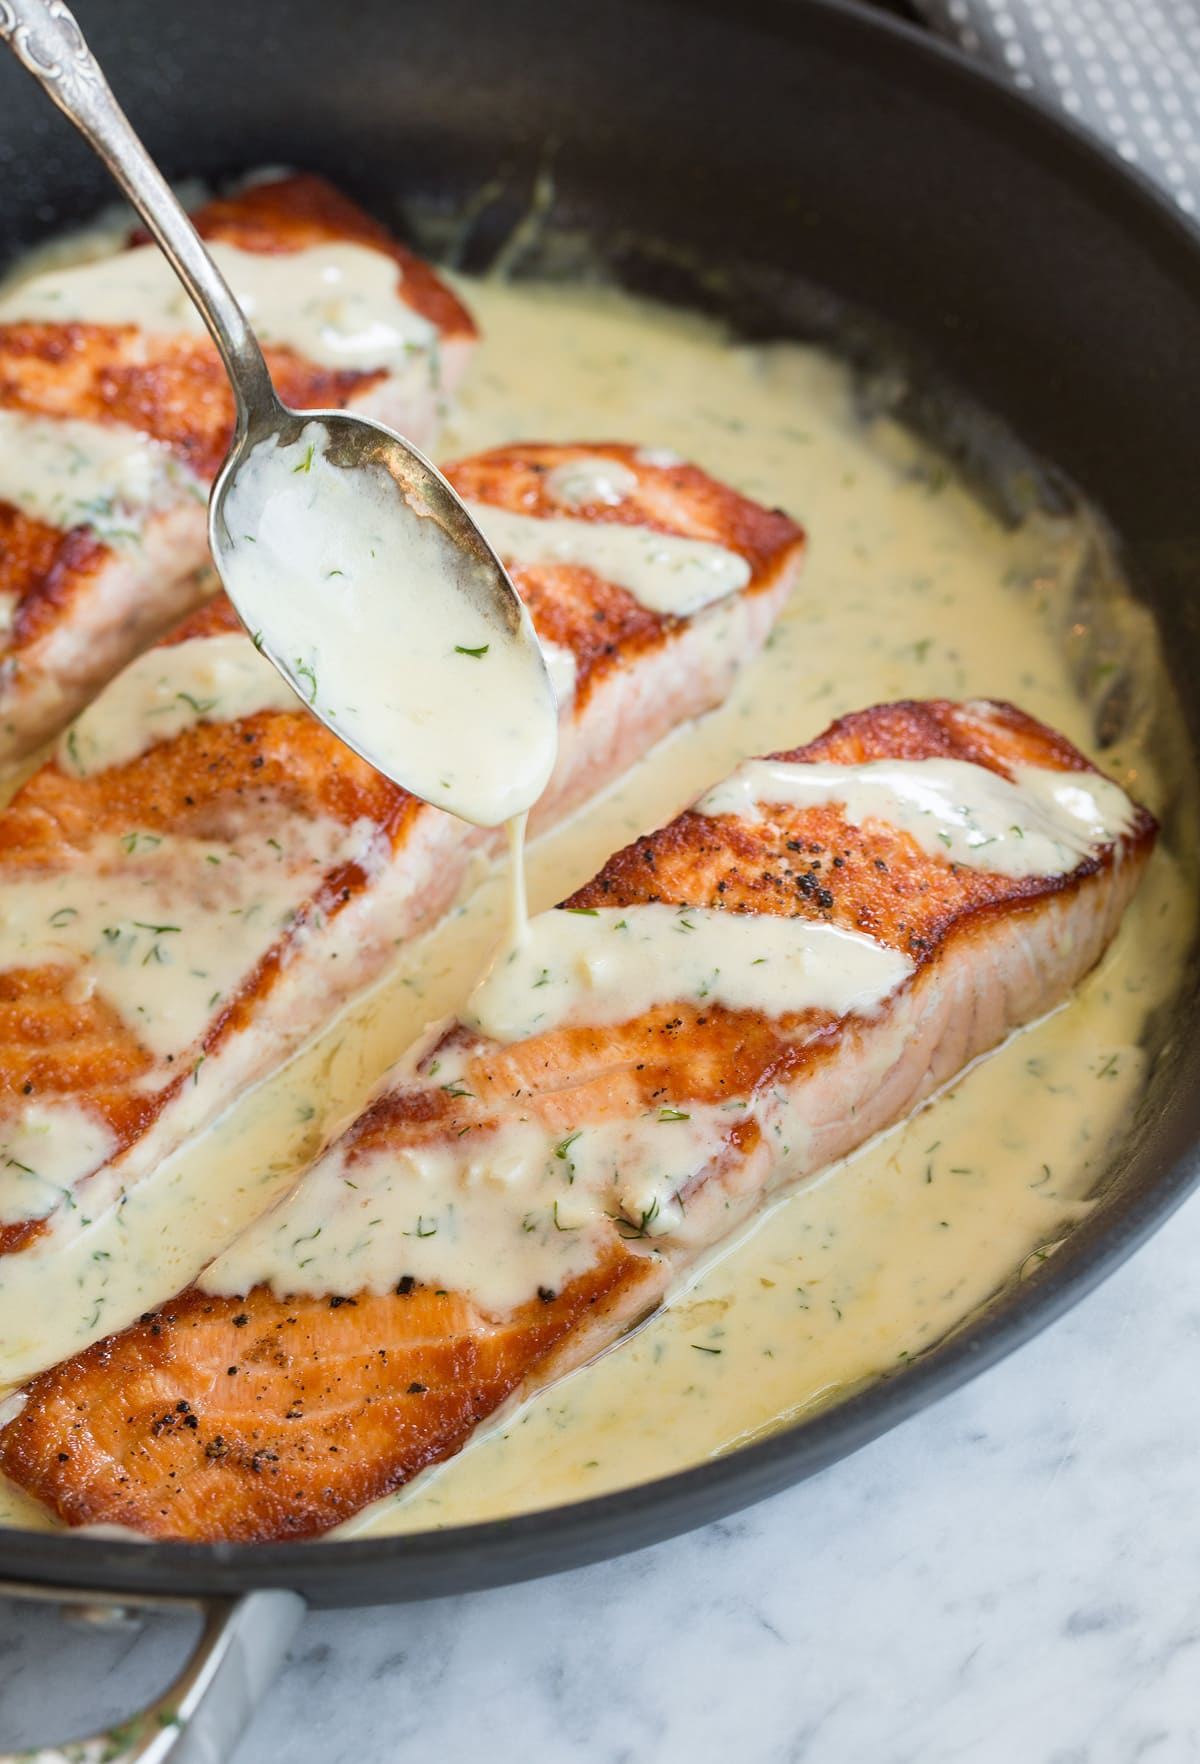 Spooning sauce over a fillet of salmon in a skillet.